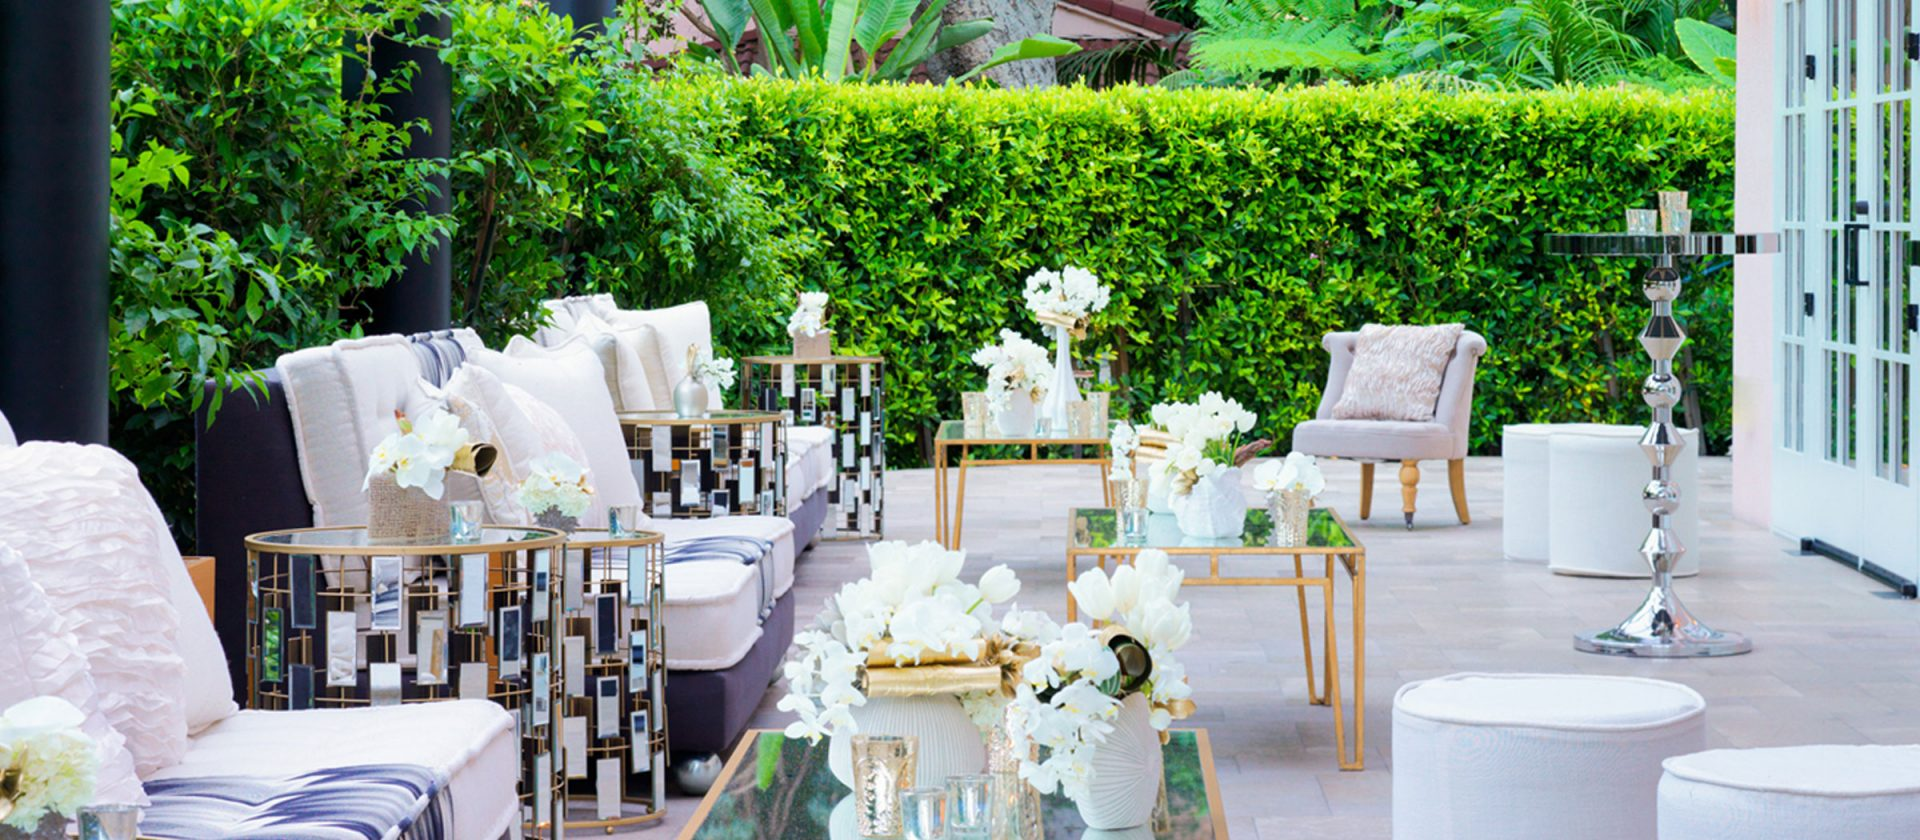 , Hotel Bel-Air, AMERICAN ACADEMY OF HOSPITALITY SCIENCES